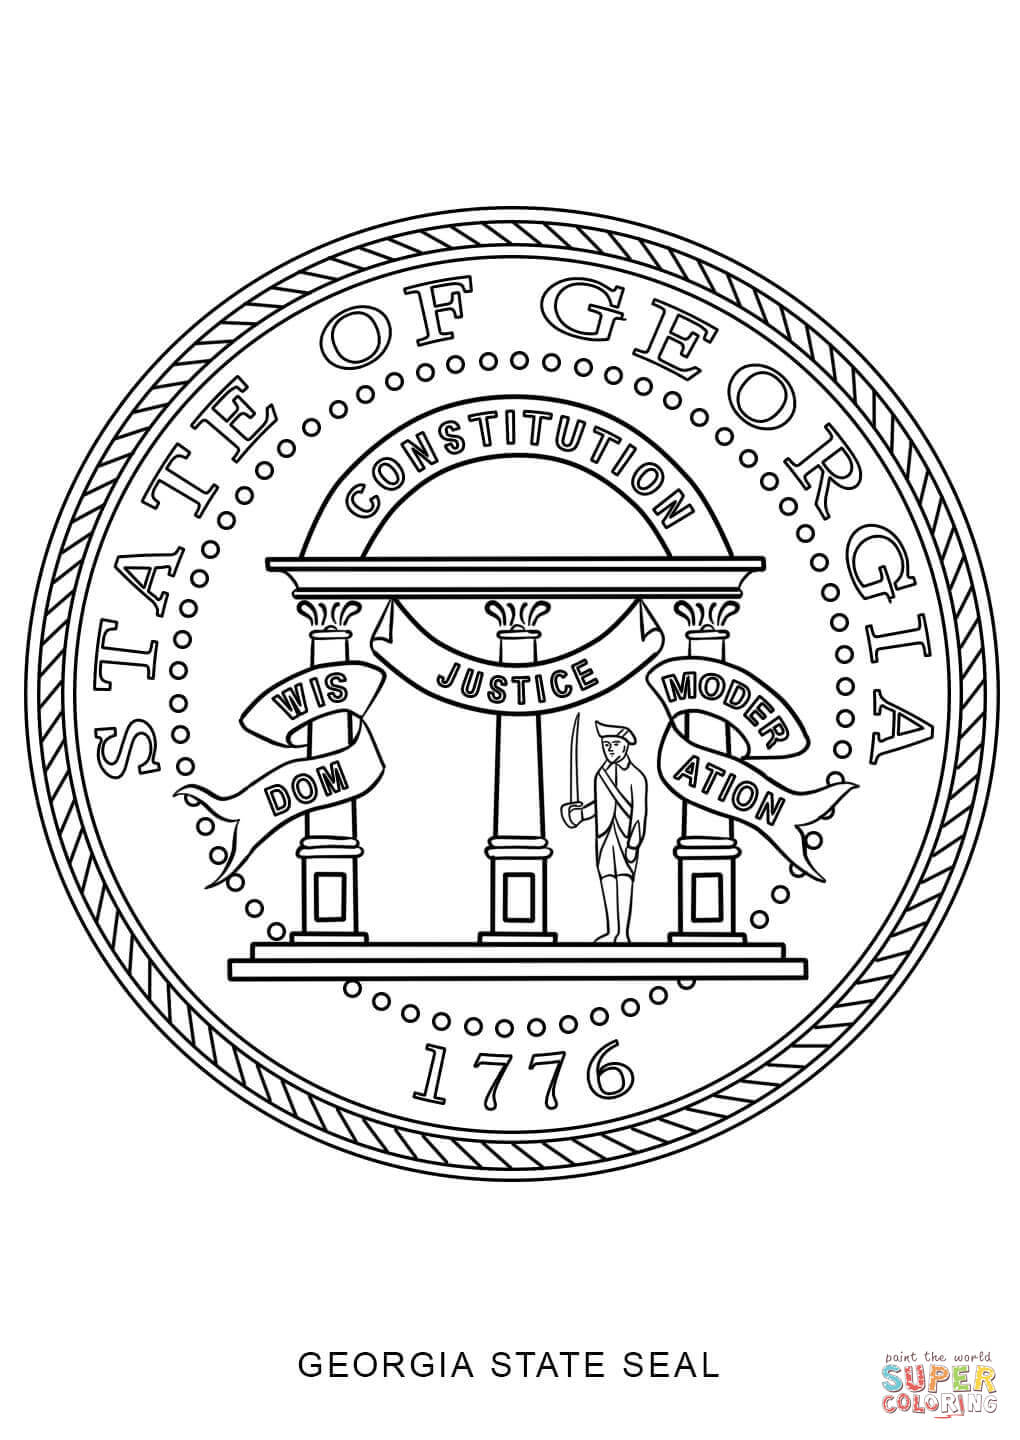 georgia map coloring page georgia state seal coloring page free printable coloring georgia coloring page map